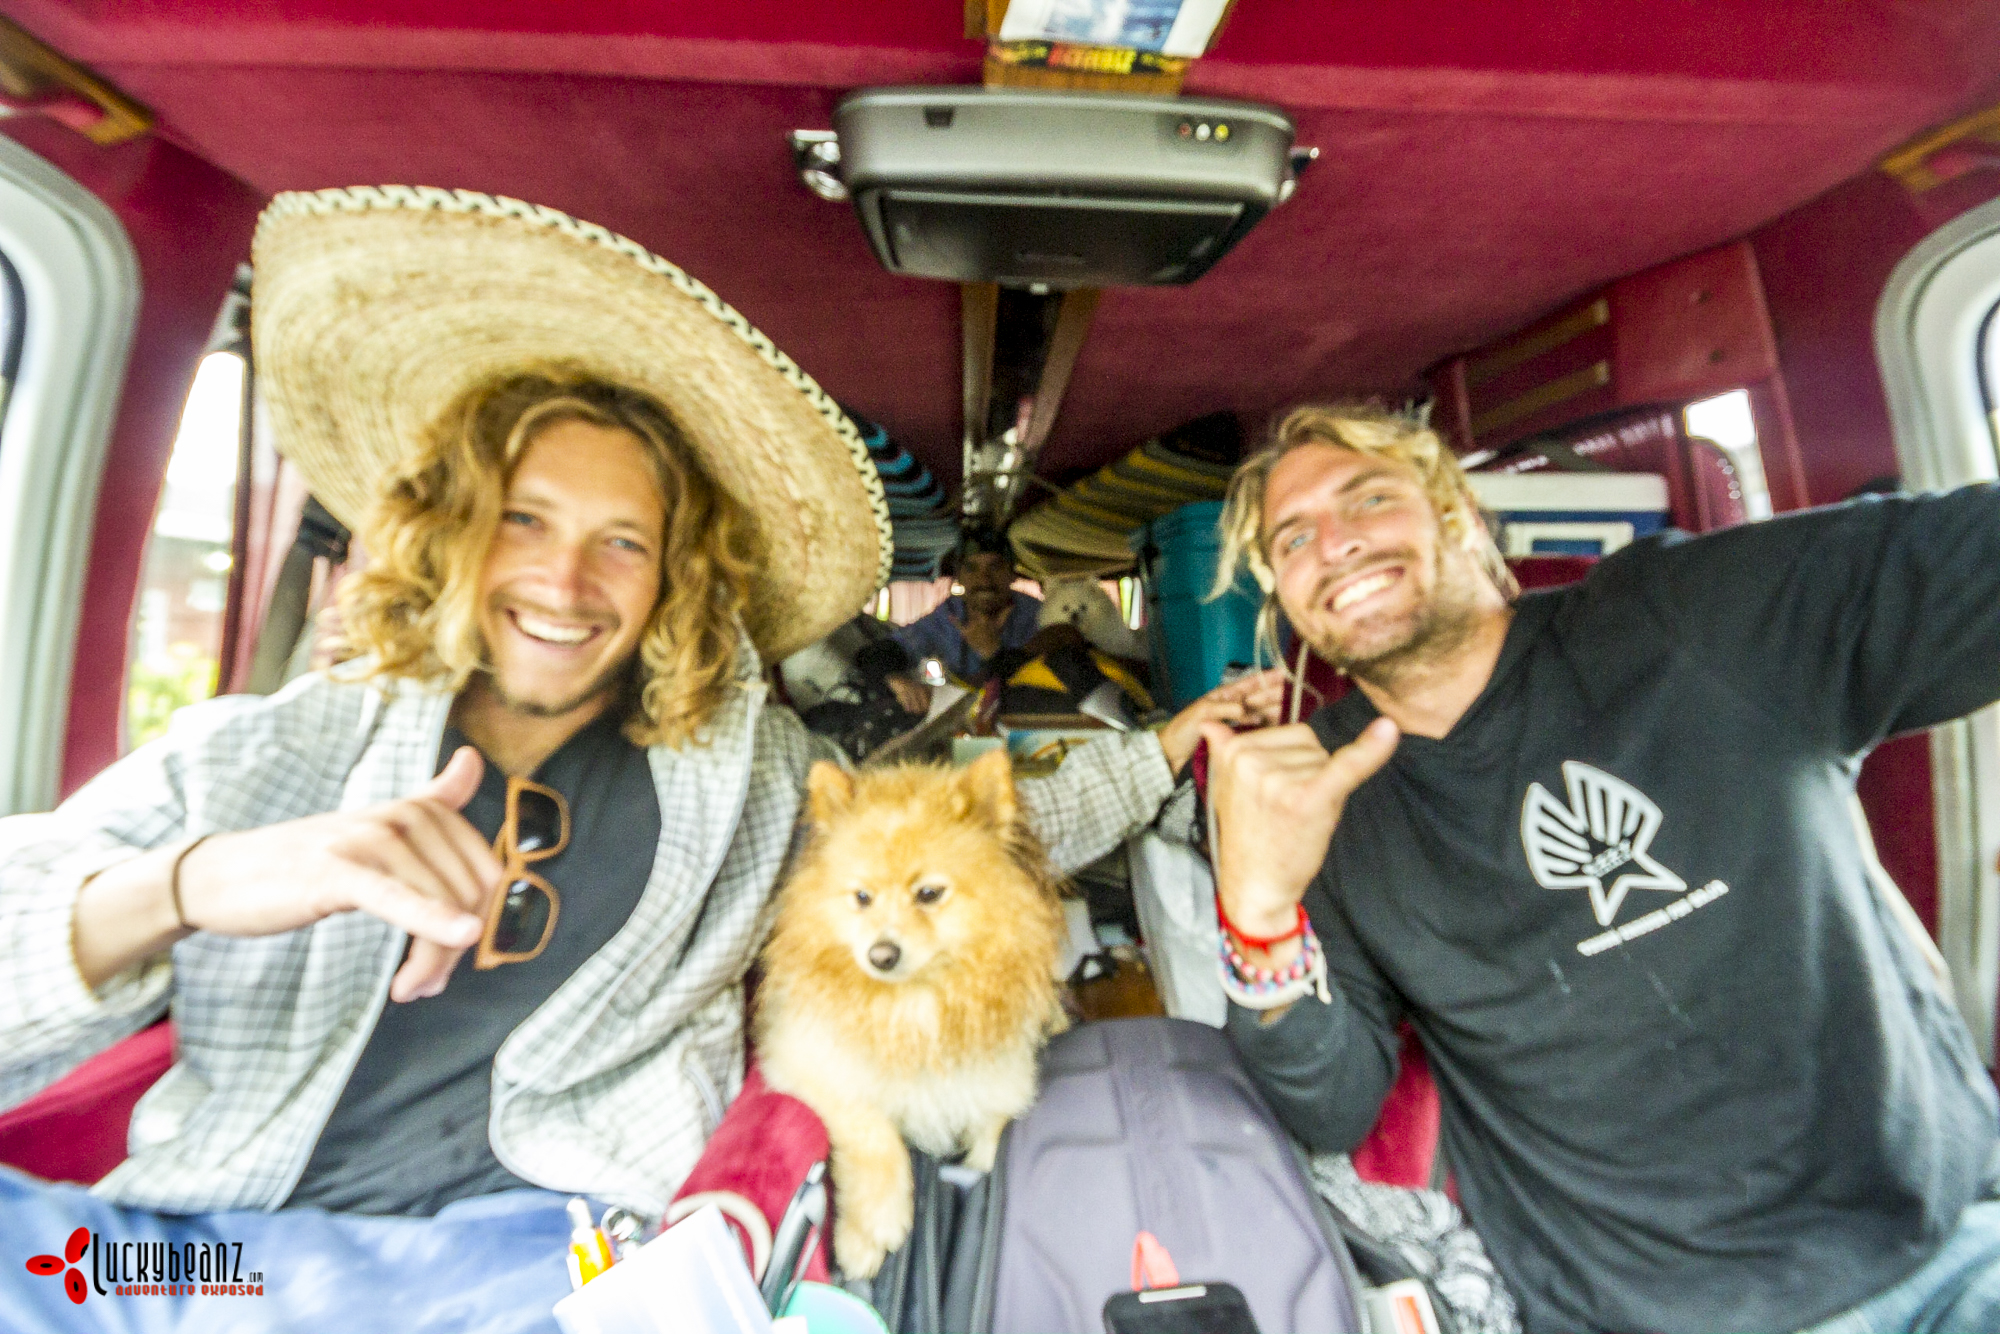 Van loaded and ready for Scorpion Bay.